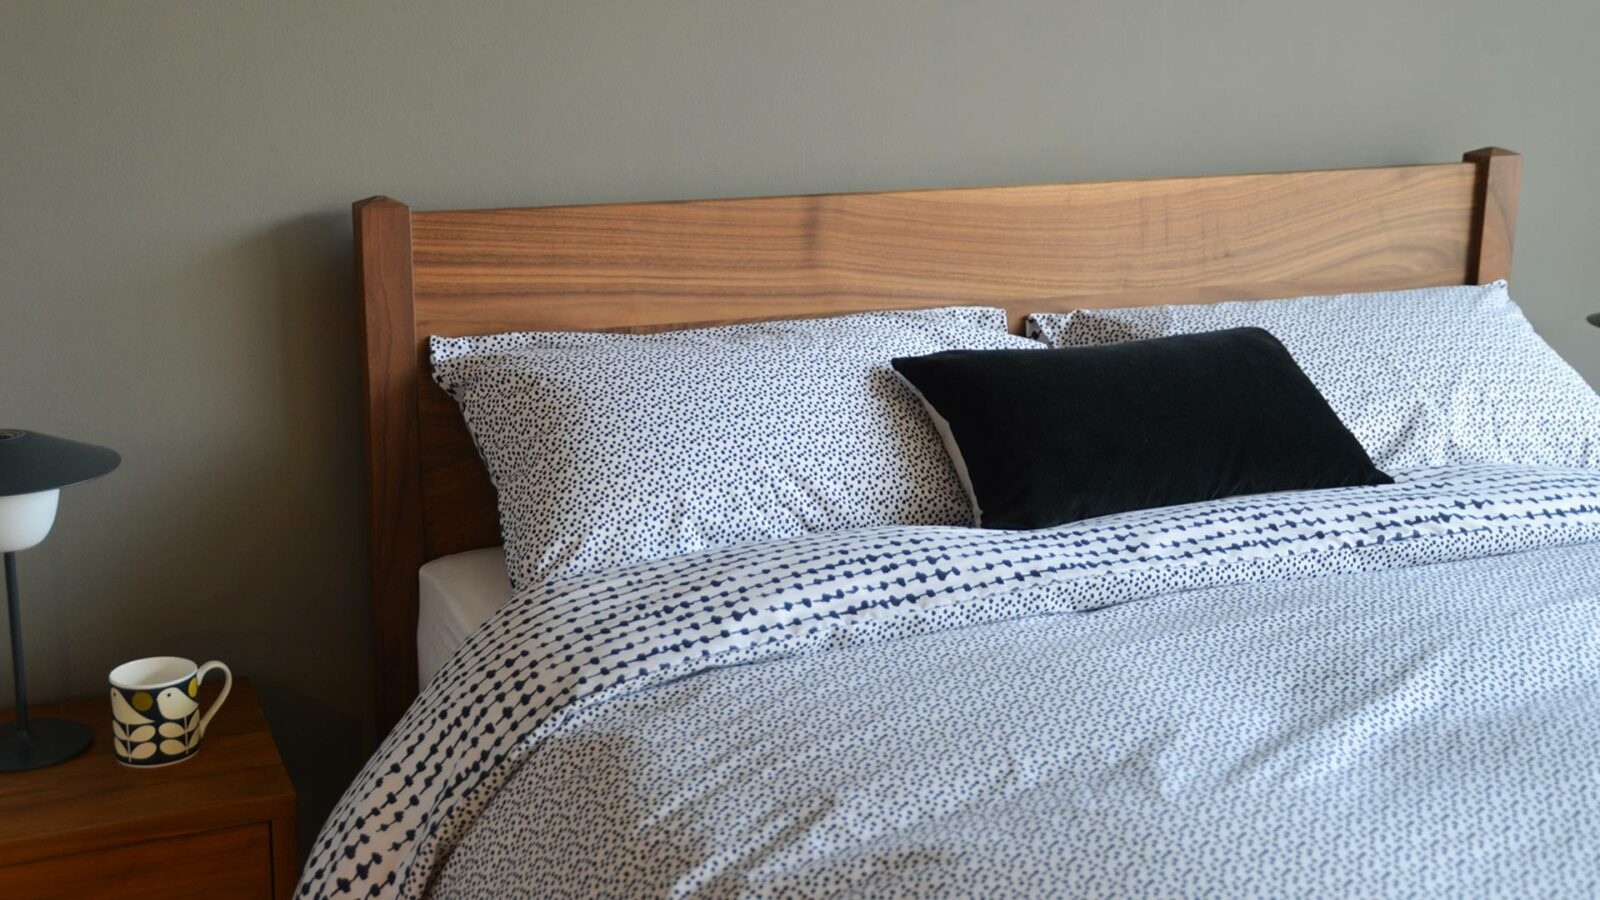 monochrome abstract print duvet cover set shown on our walnut wood Cochin bed